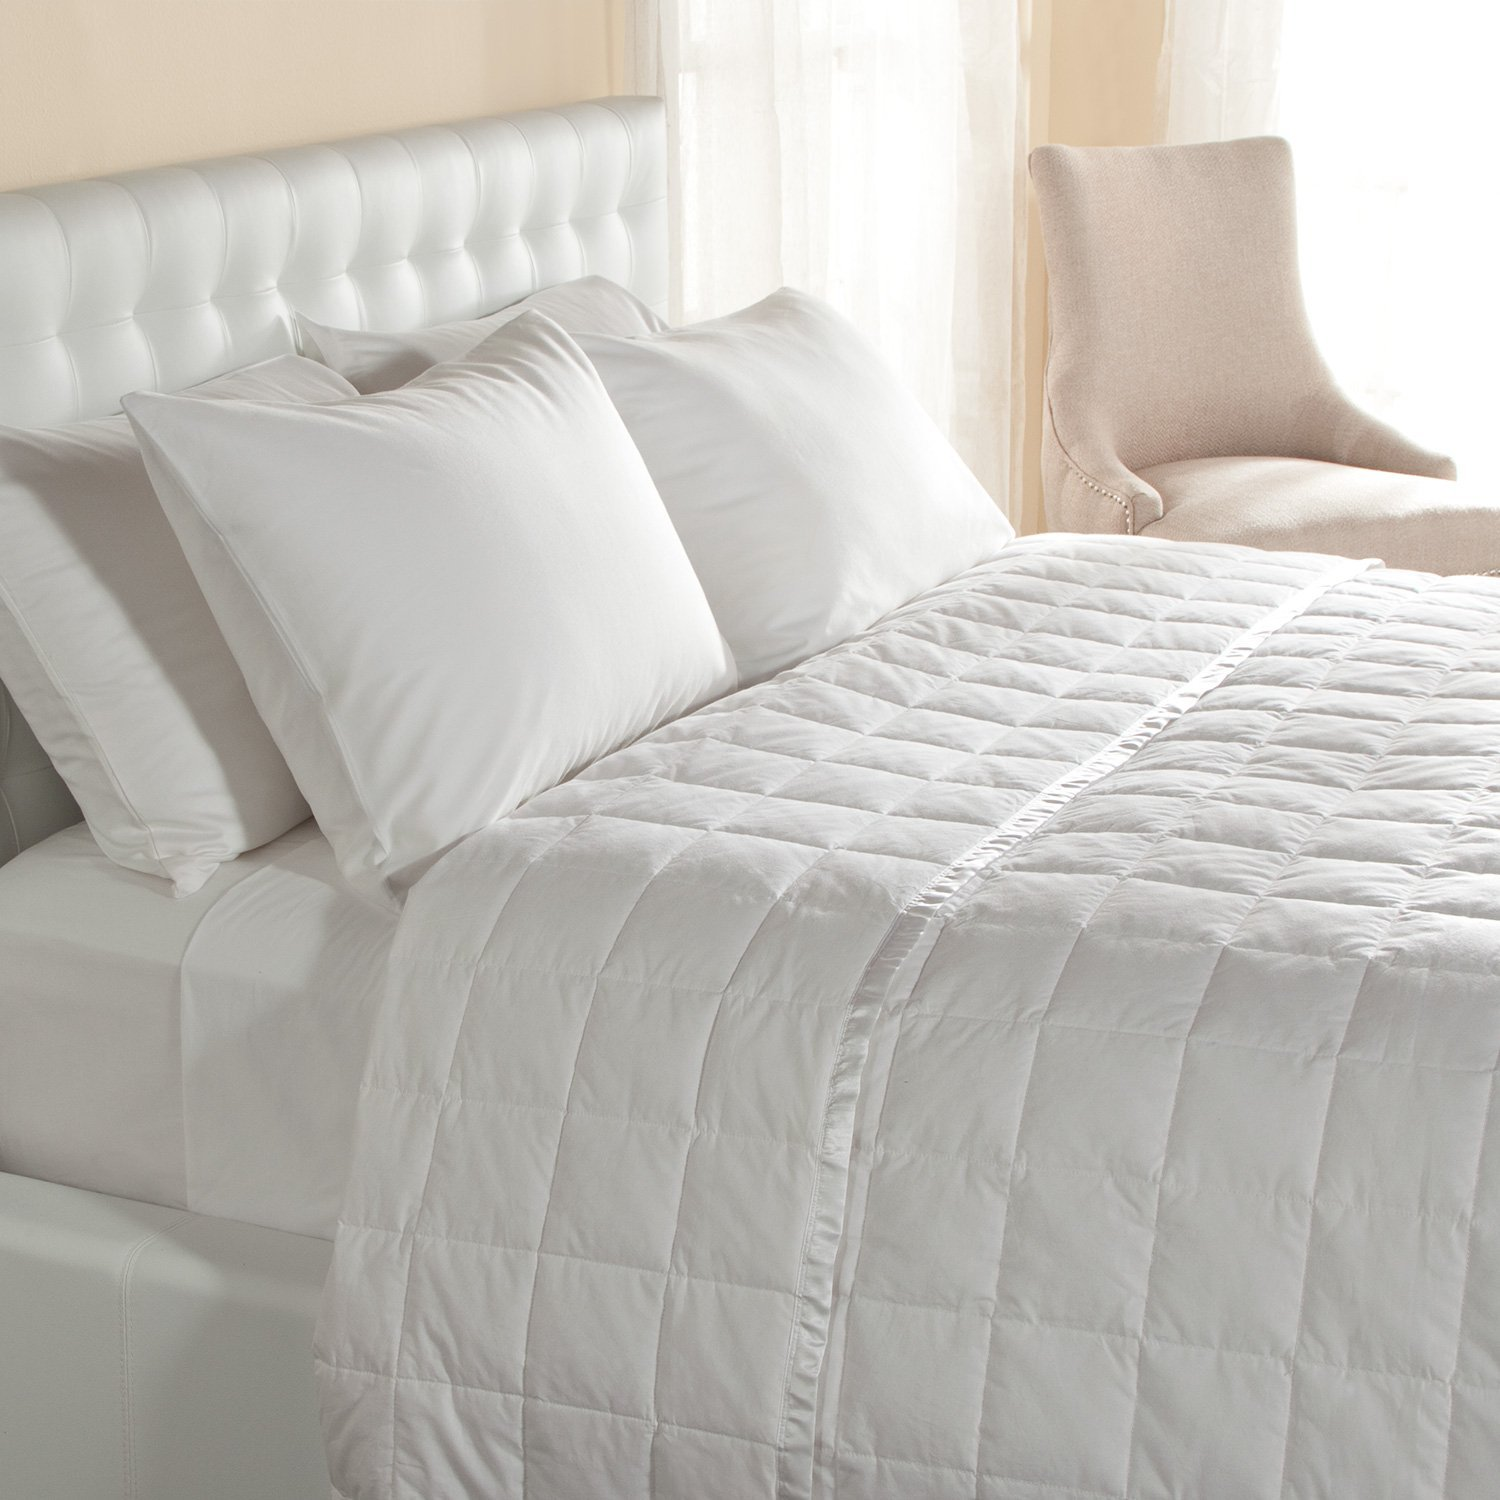 Hypoallergenic 230 TC Oversized King Down Blanket With Satin Trim - Light Weight - Perfect For Summer - Available In White & Ivory 113'' x 104'' (Oversized King, White)